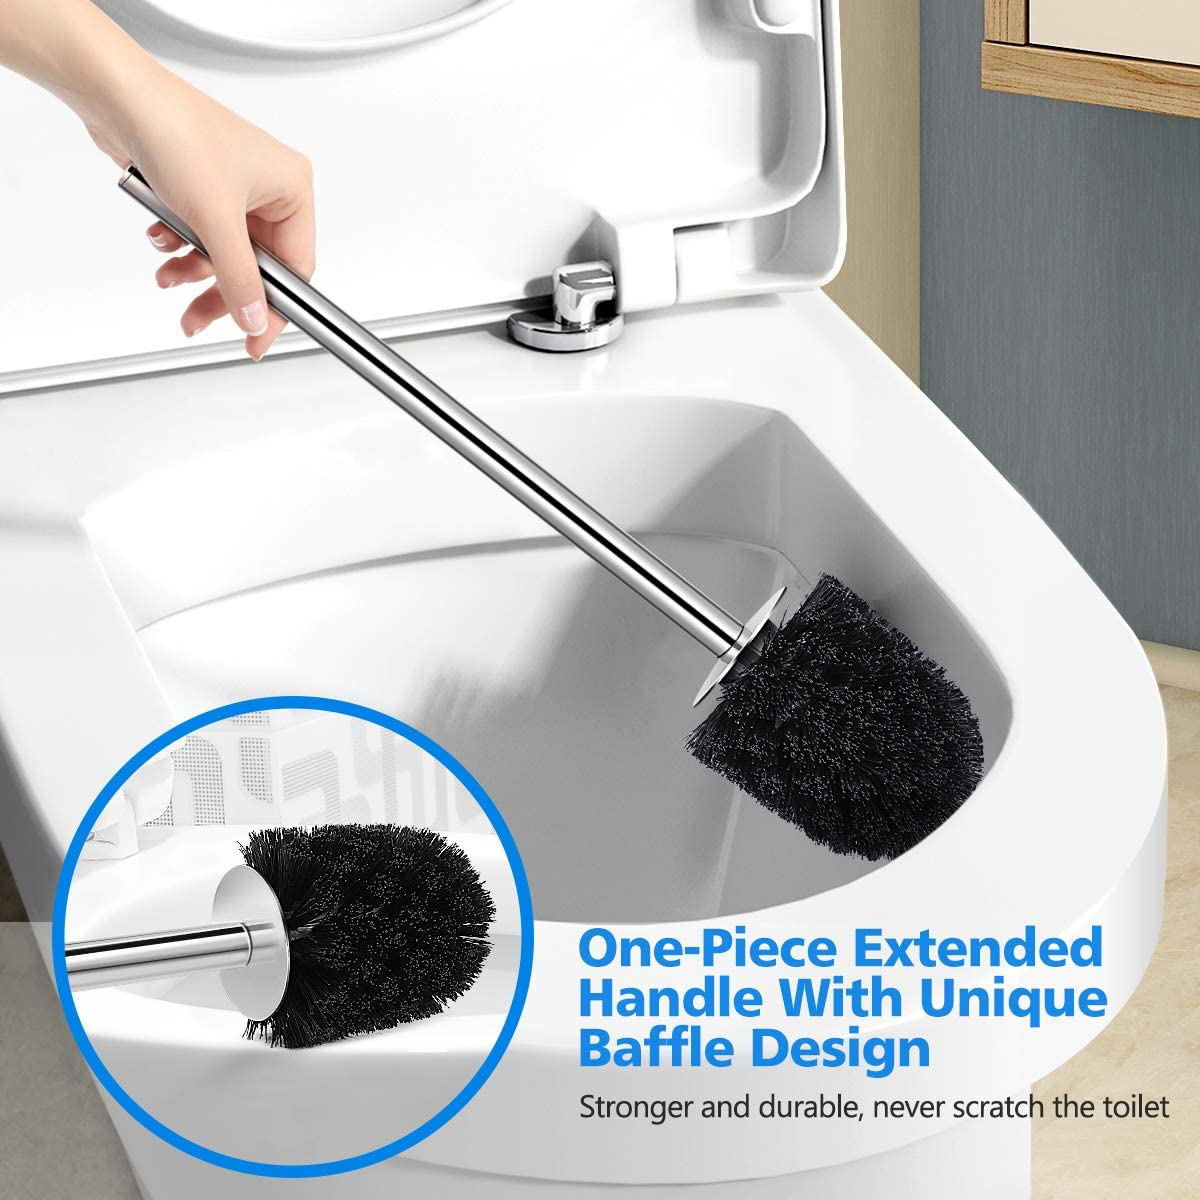 Upgraded 304 Stainless Steel Toilet Bowl Brush 2 Pack, Modern Toilet Brush and Holder with Durable Bristles